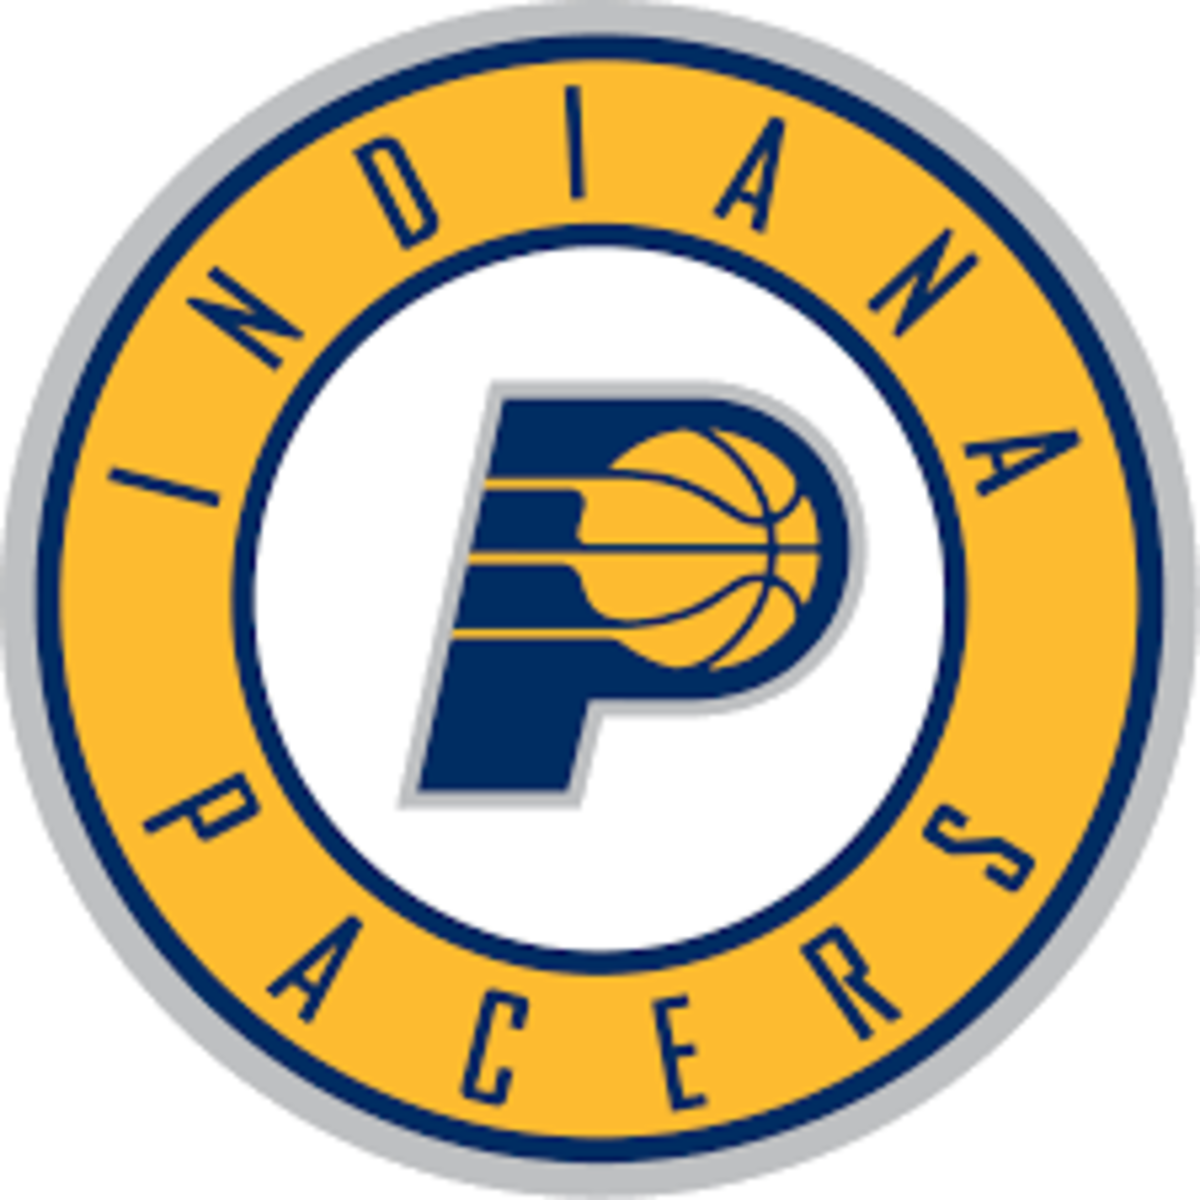 The Pacers finished 9th this year in the East with a 34-38 record.